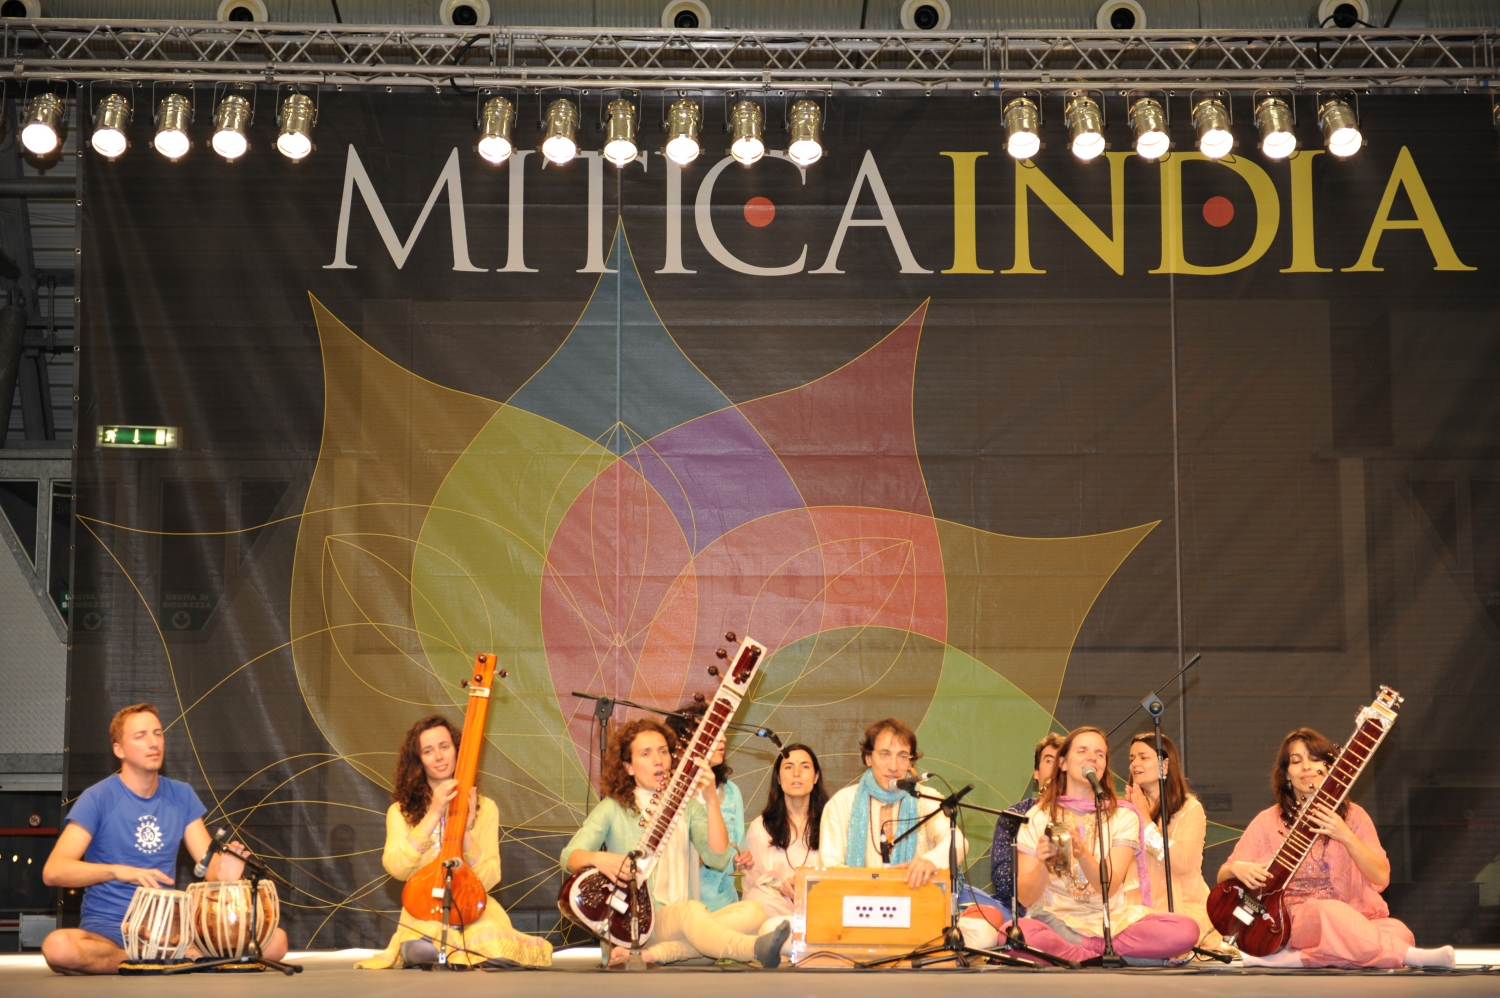 Mittica India, Carrara, Itália, 2010